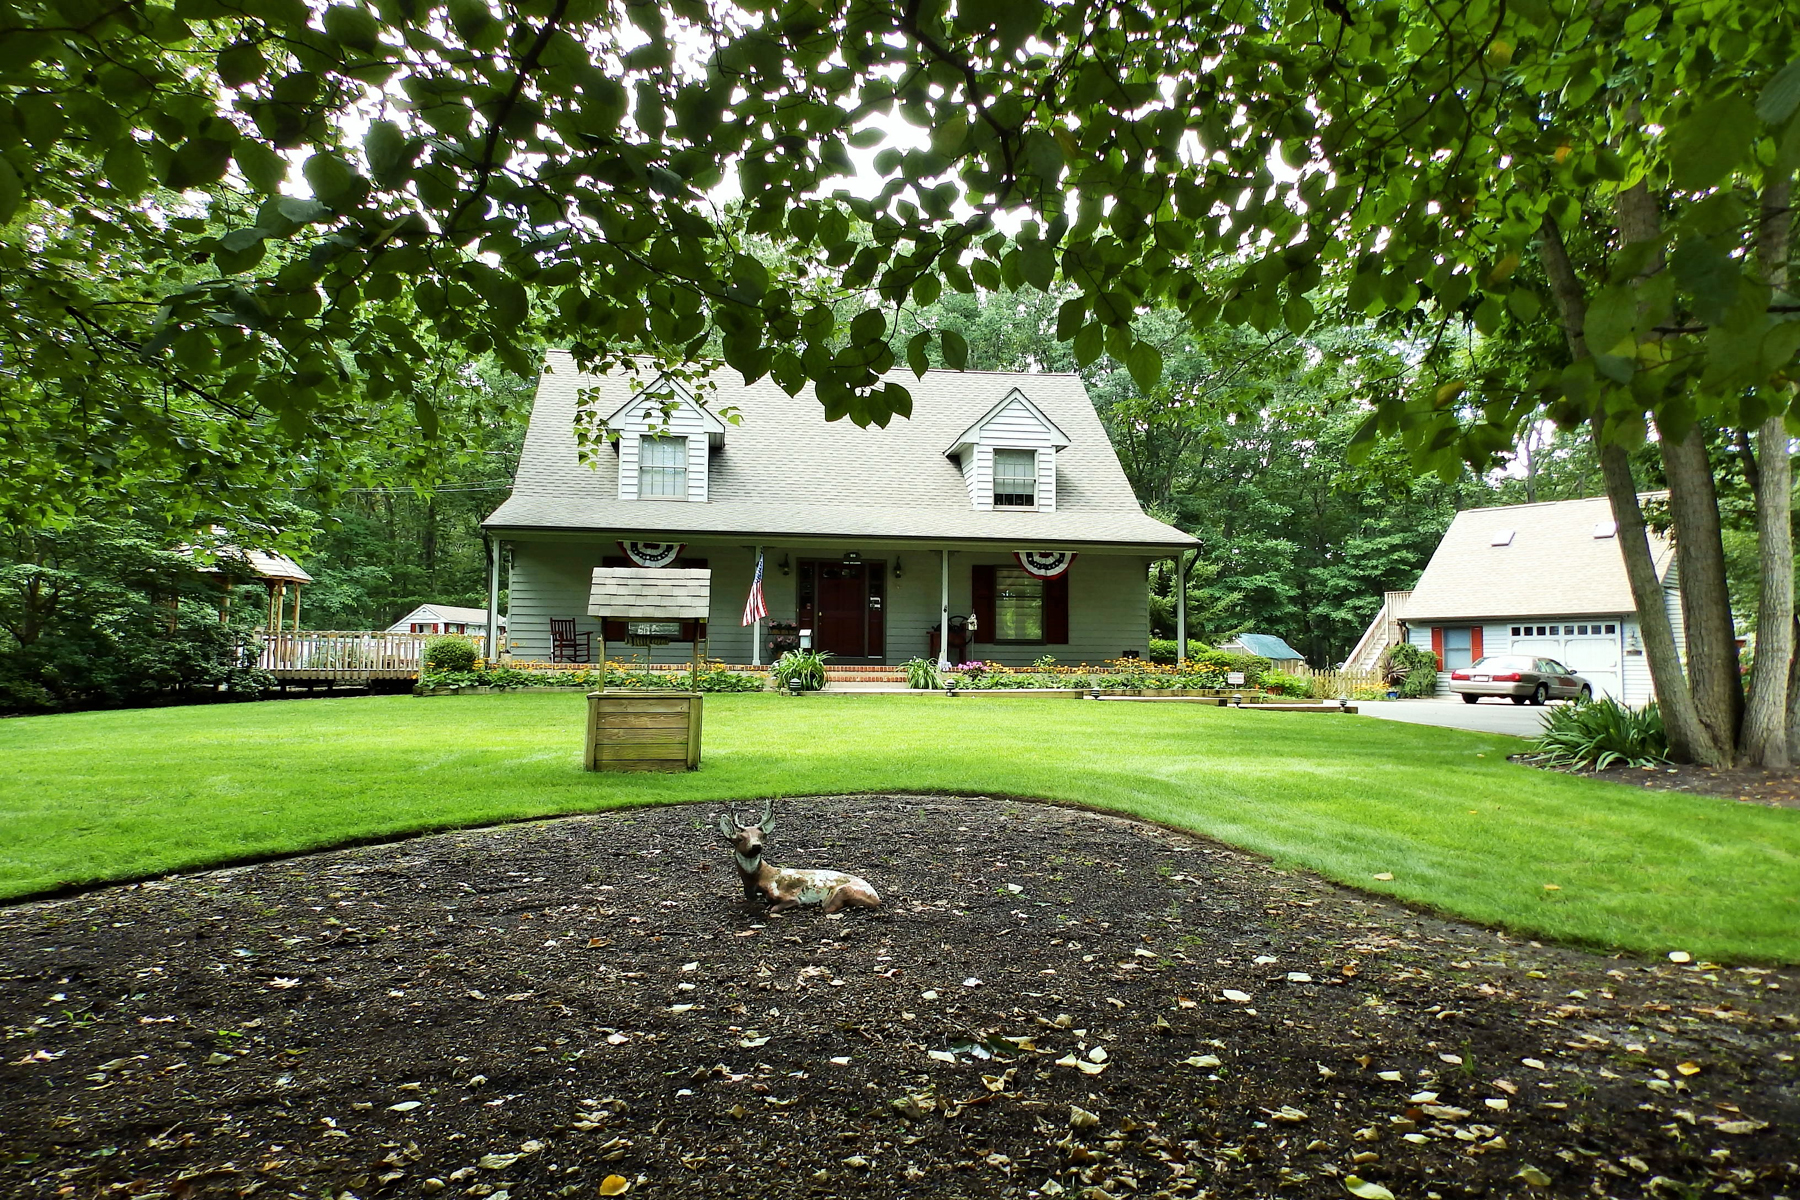 Single Family Home for Sale at Enjoy Country Living! 26 Shenandoah Avenue Manchester, New Jersey 08759 United States